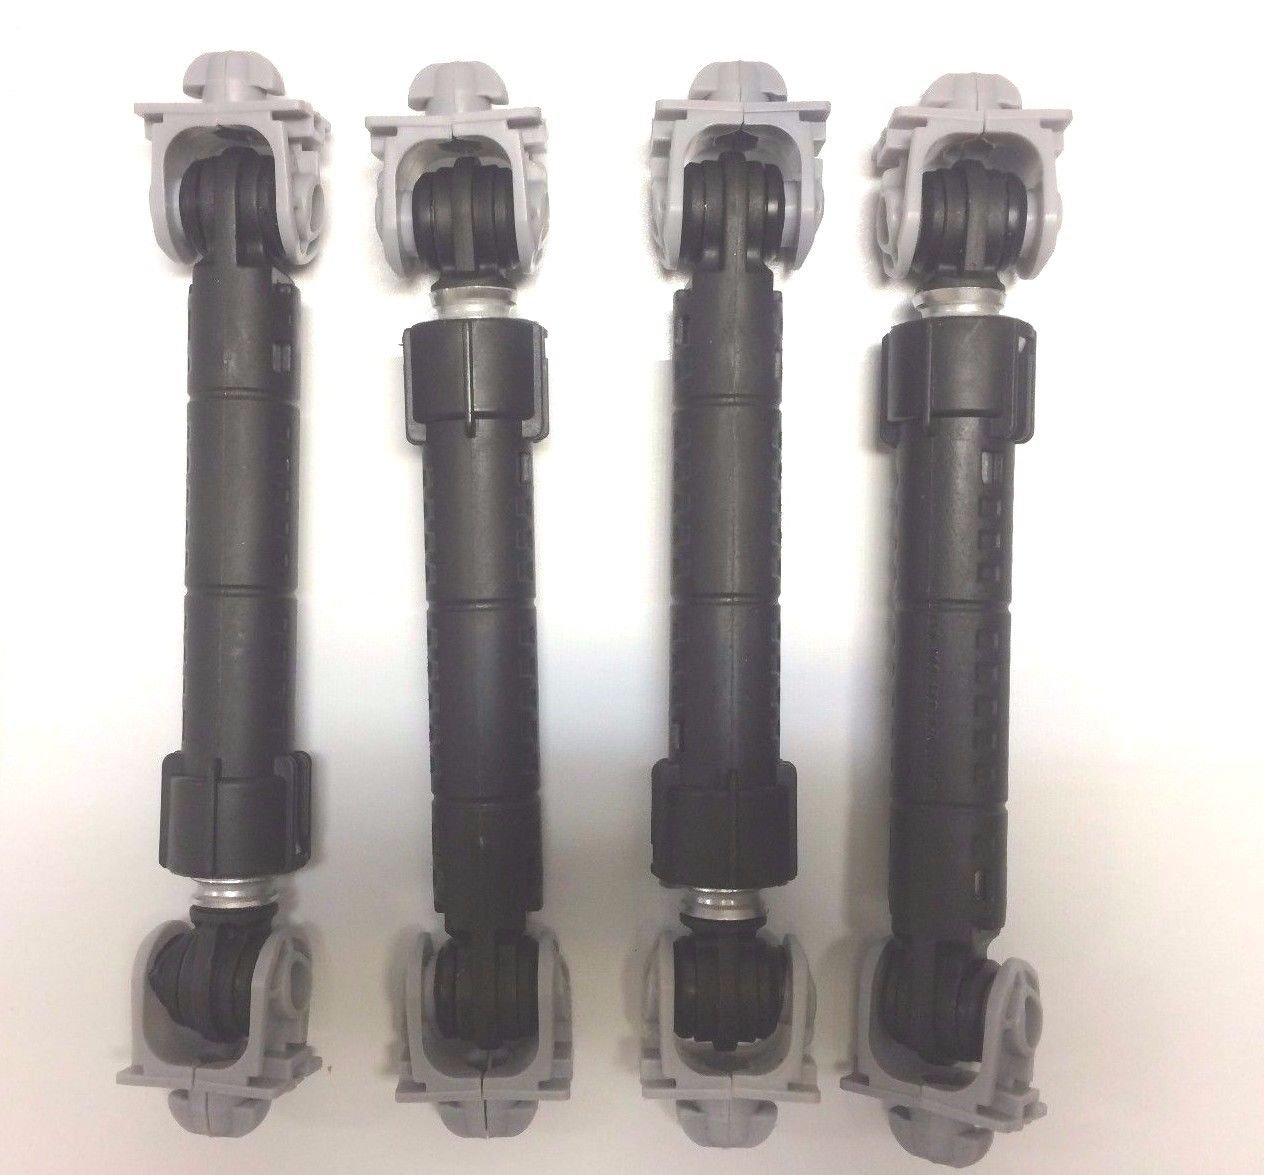 NEW Set of 4 pcs Replacement WHIRLPOOL Maytag Washer Shock Absorber 8182703 8181646 AP3868181 PS989596 - 1 YEAR WARRANTY